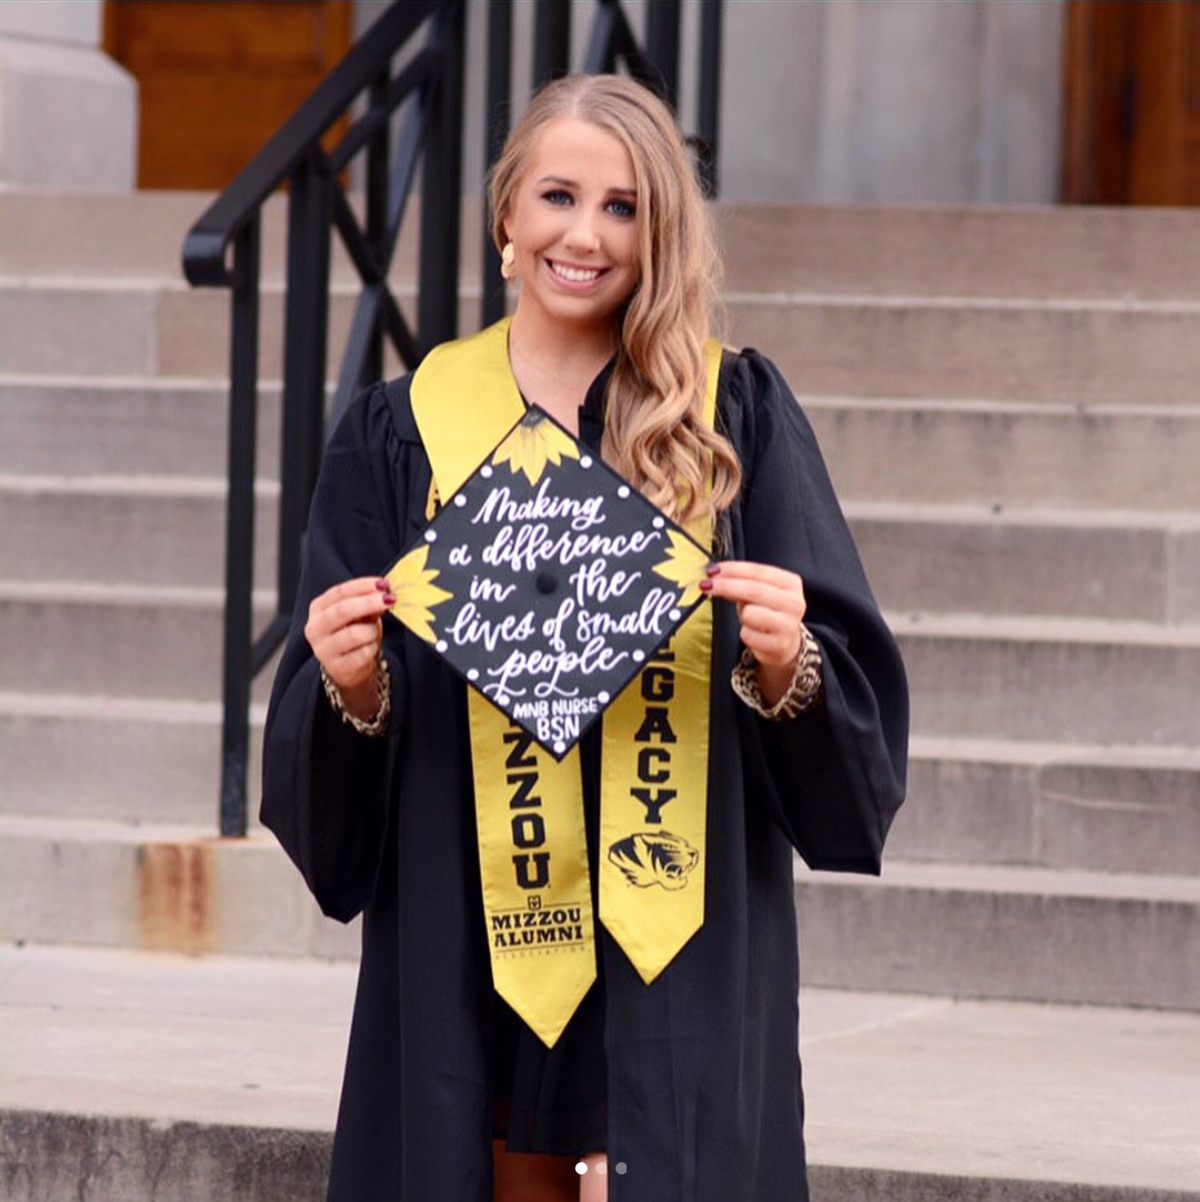 At Least 1 Of These 60 Graduation Cap Ideas Is Bound To Win Your Heart And Steal The Show At Graduation